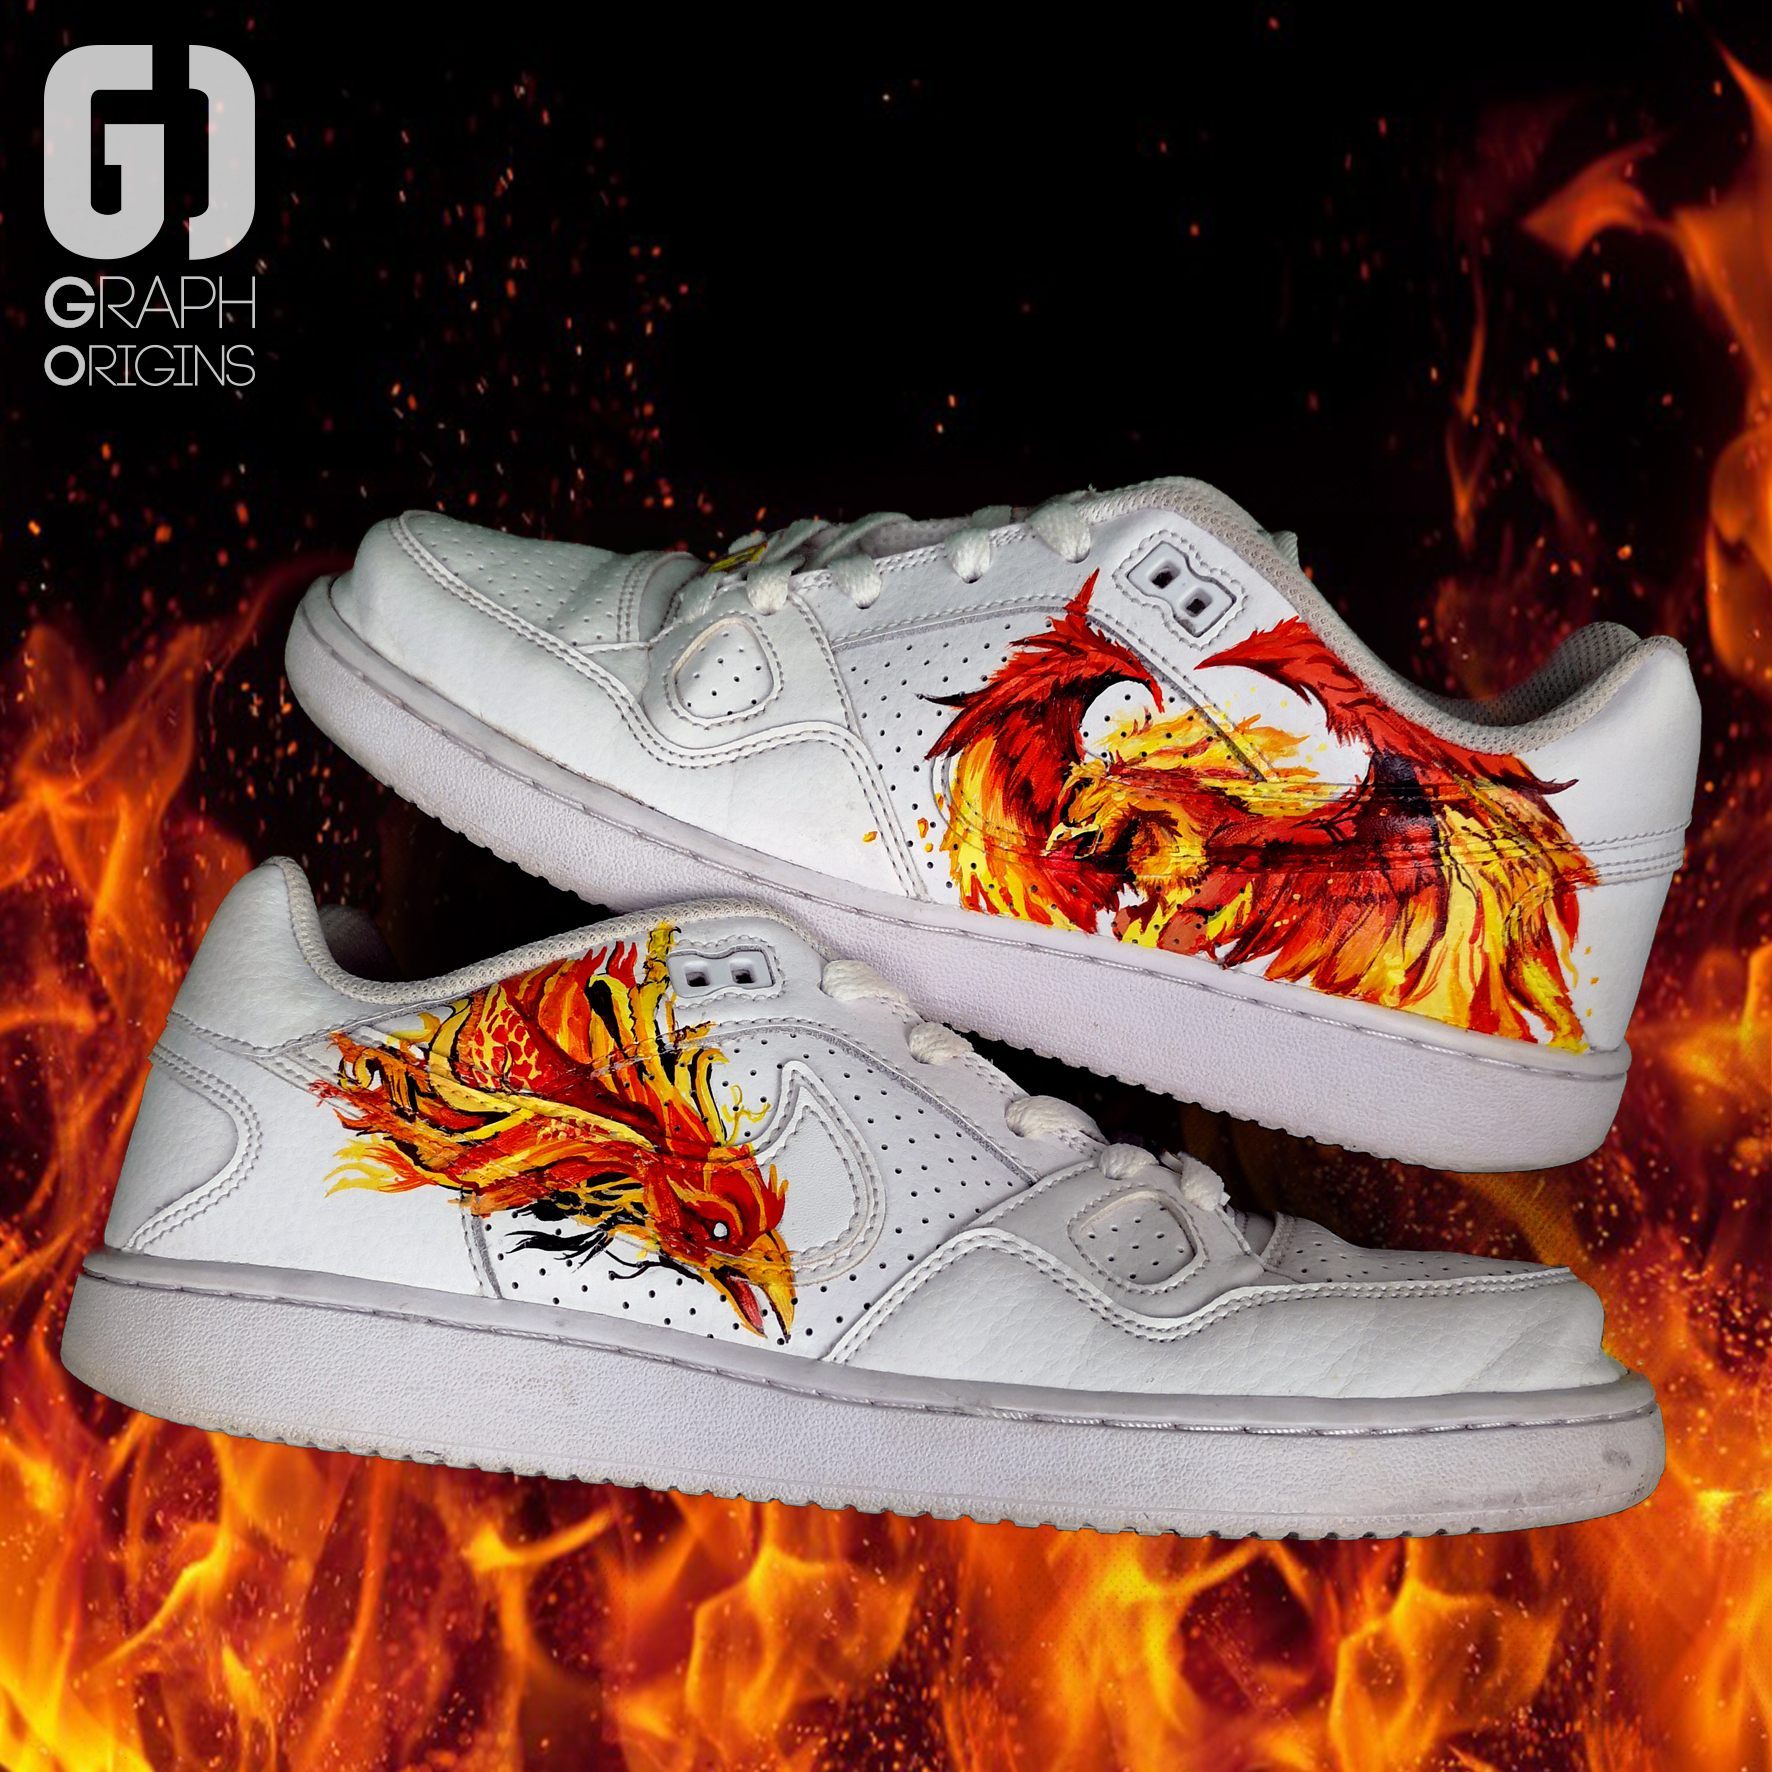 Burned custom Phoenix Nike 4